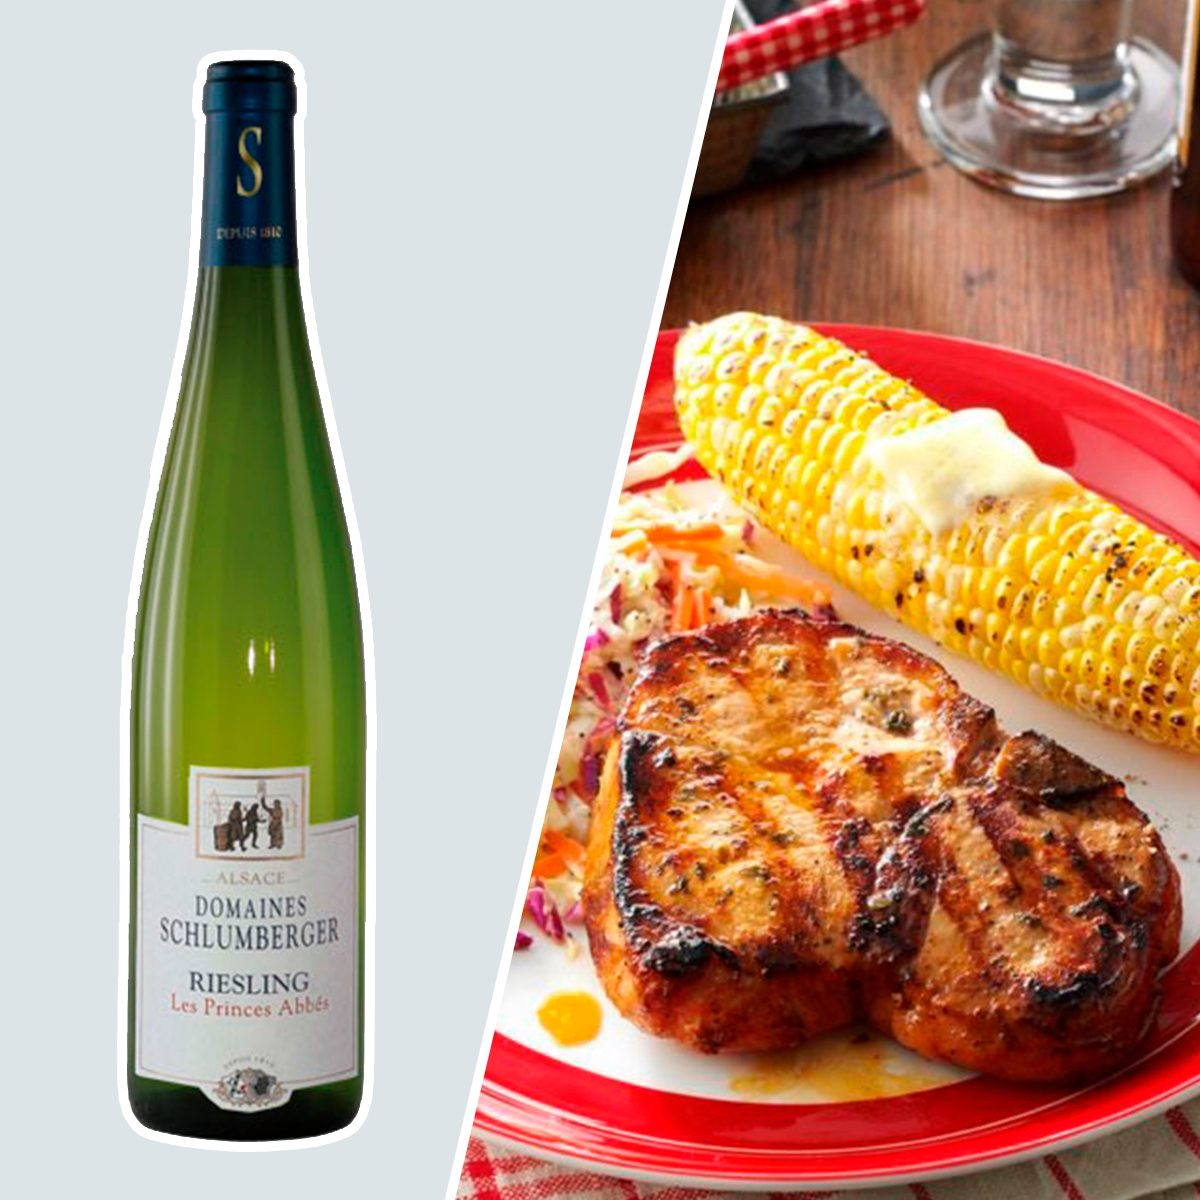 Riesling Les Princes Abbés and grilled pork